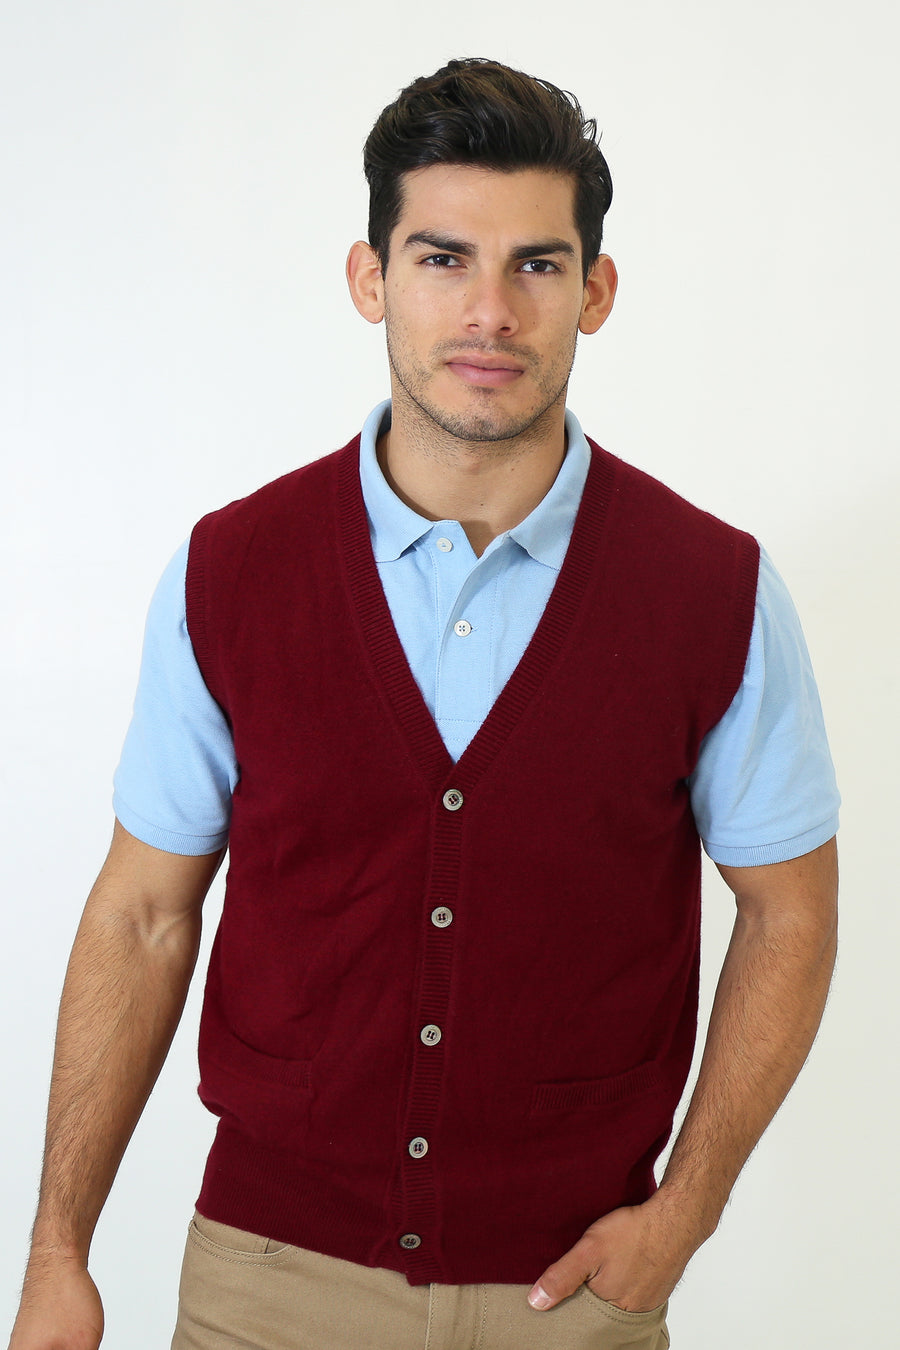 pine cashmere mens classic 100% pure cashmere v neck cardigan vest in dark burgundy red